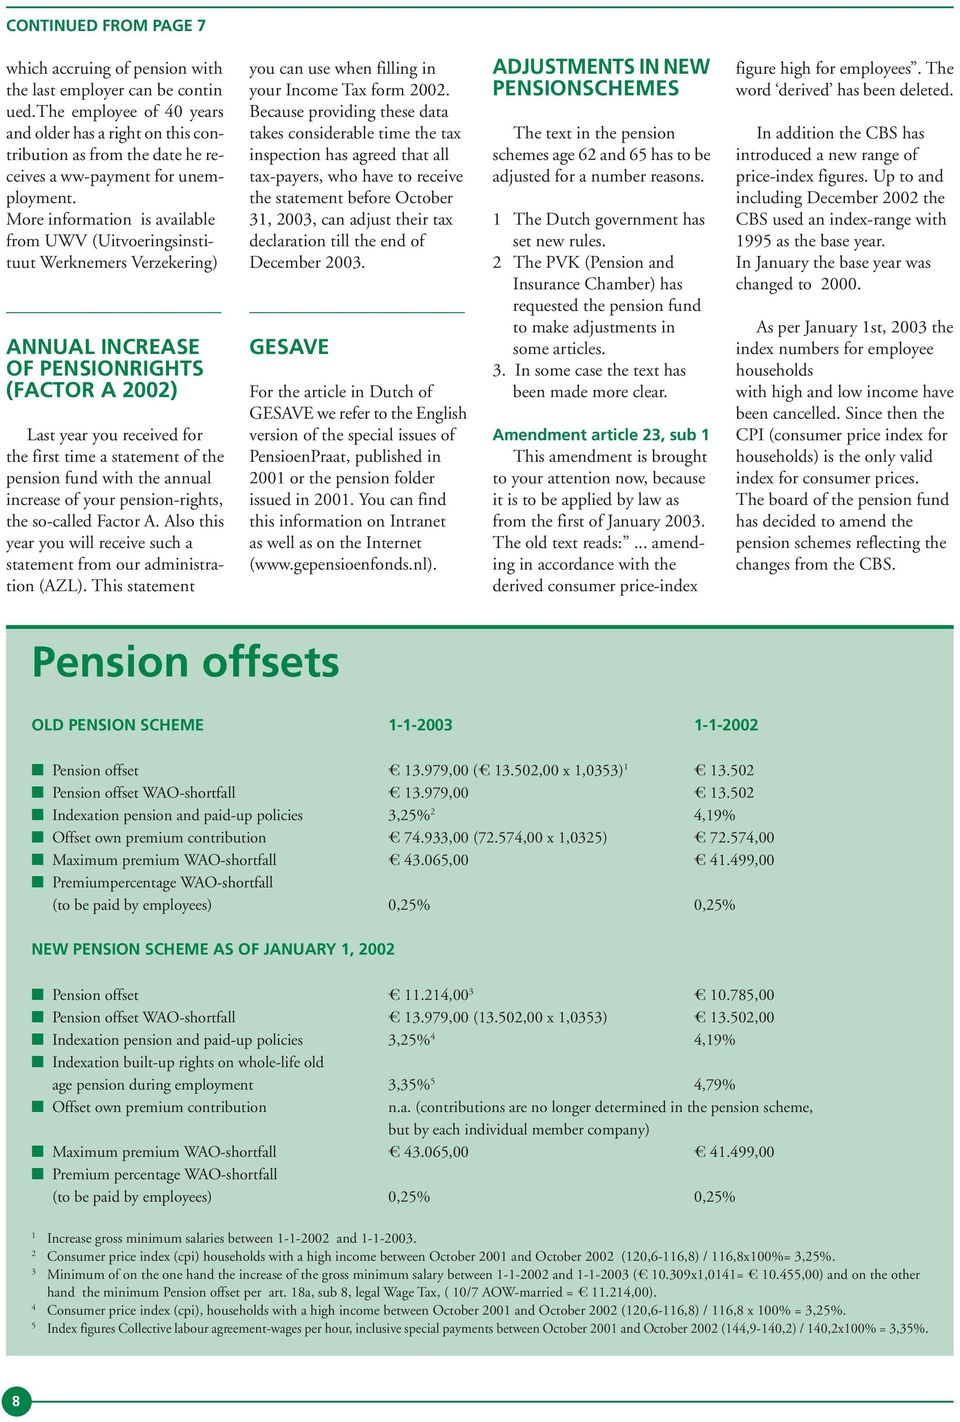 More information is available from UWV (Uitvoeringsinstituut Werknemers Verzekering) ANNUAL INCREASE OF PENSIONRIGHTS (FACTOR A 2002) Last year you received for the first time a statement of the